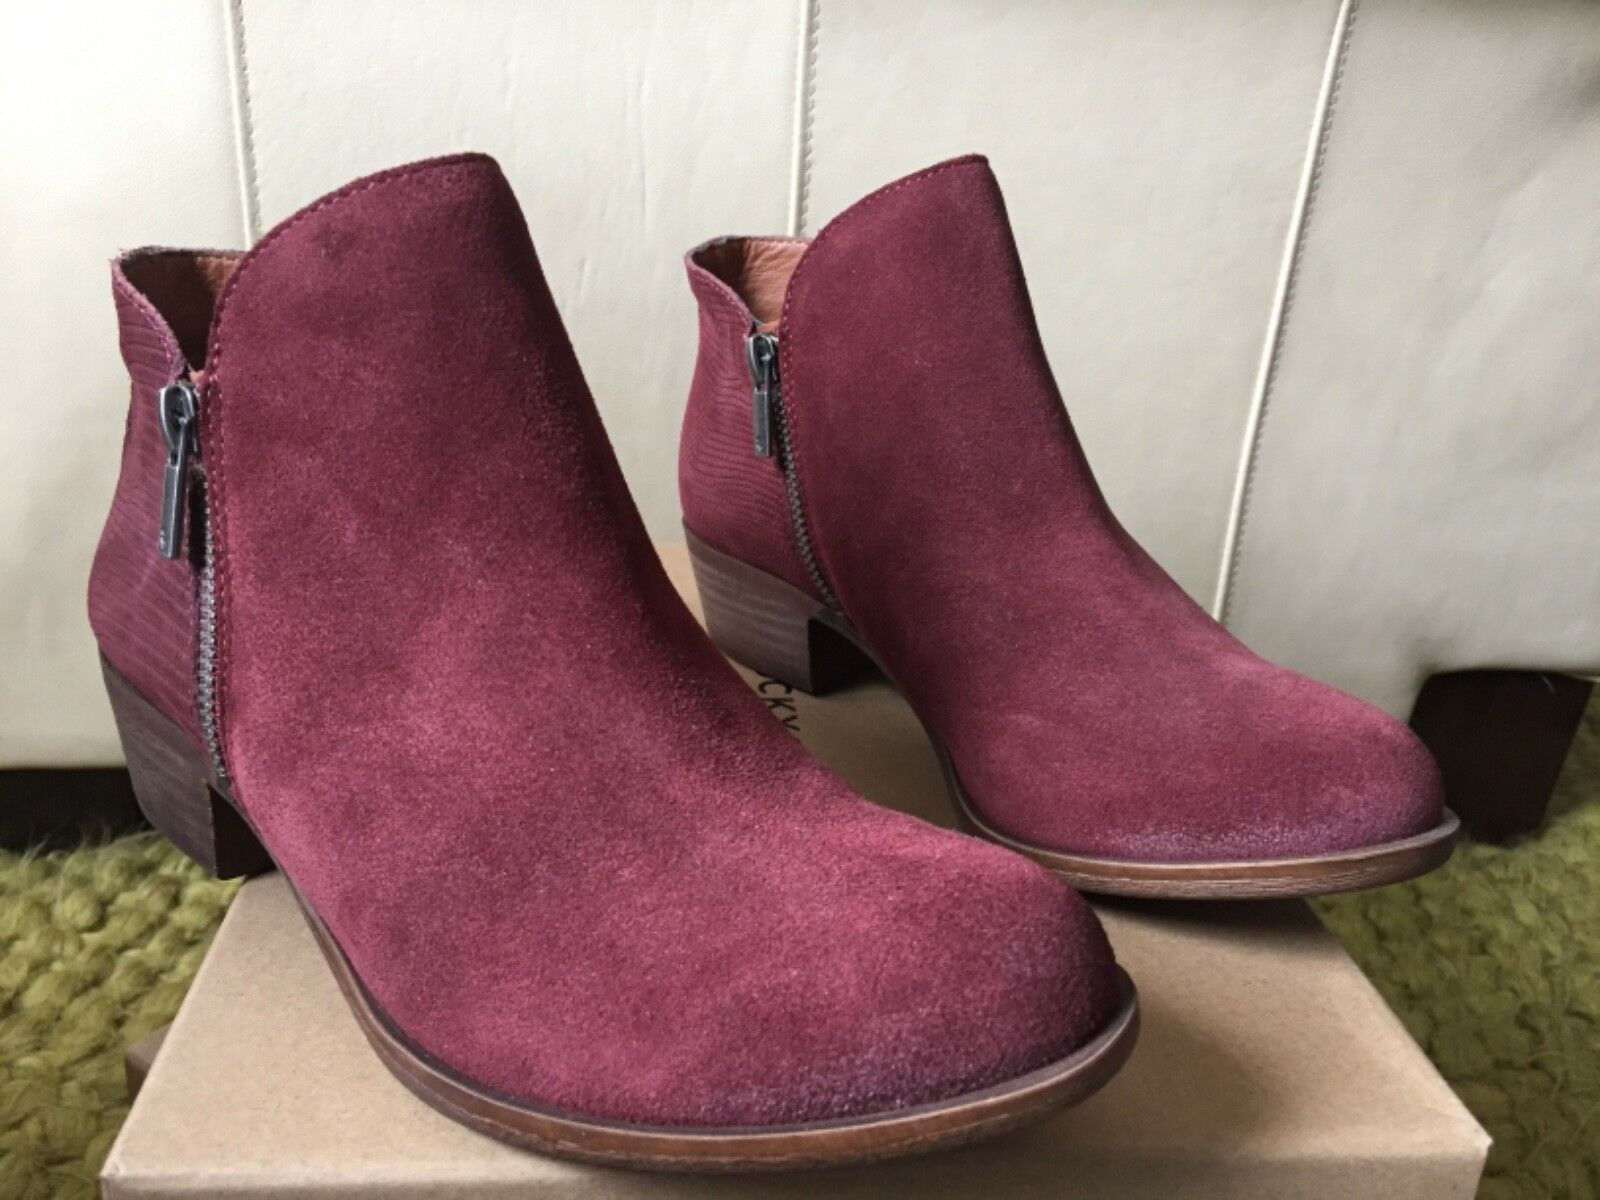 Lucky Blare Size 8M Genuine Leather Beet Suede New